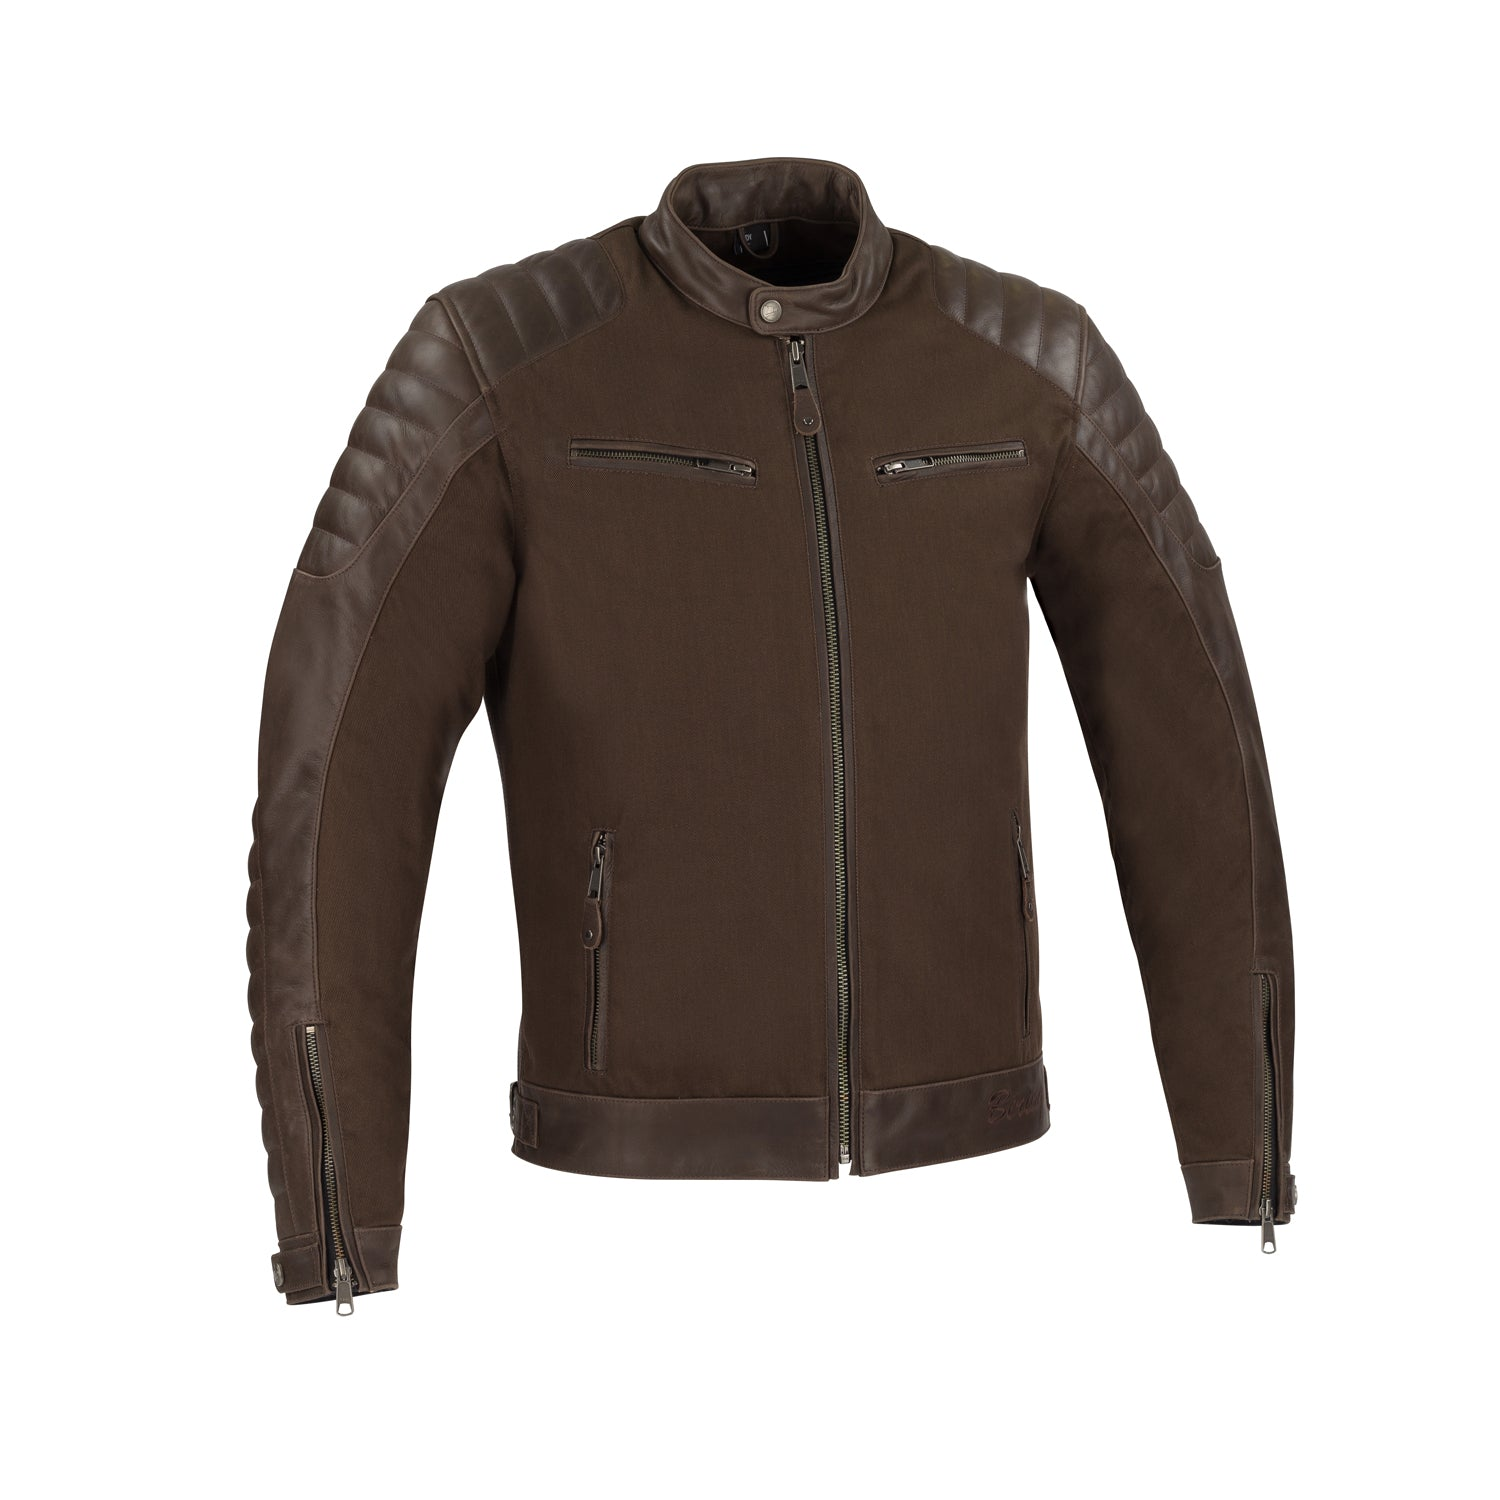 Bering Creedo Jacket, Leather Jacket, Bering - Averys Motorcycles